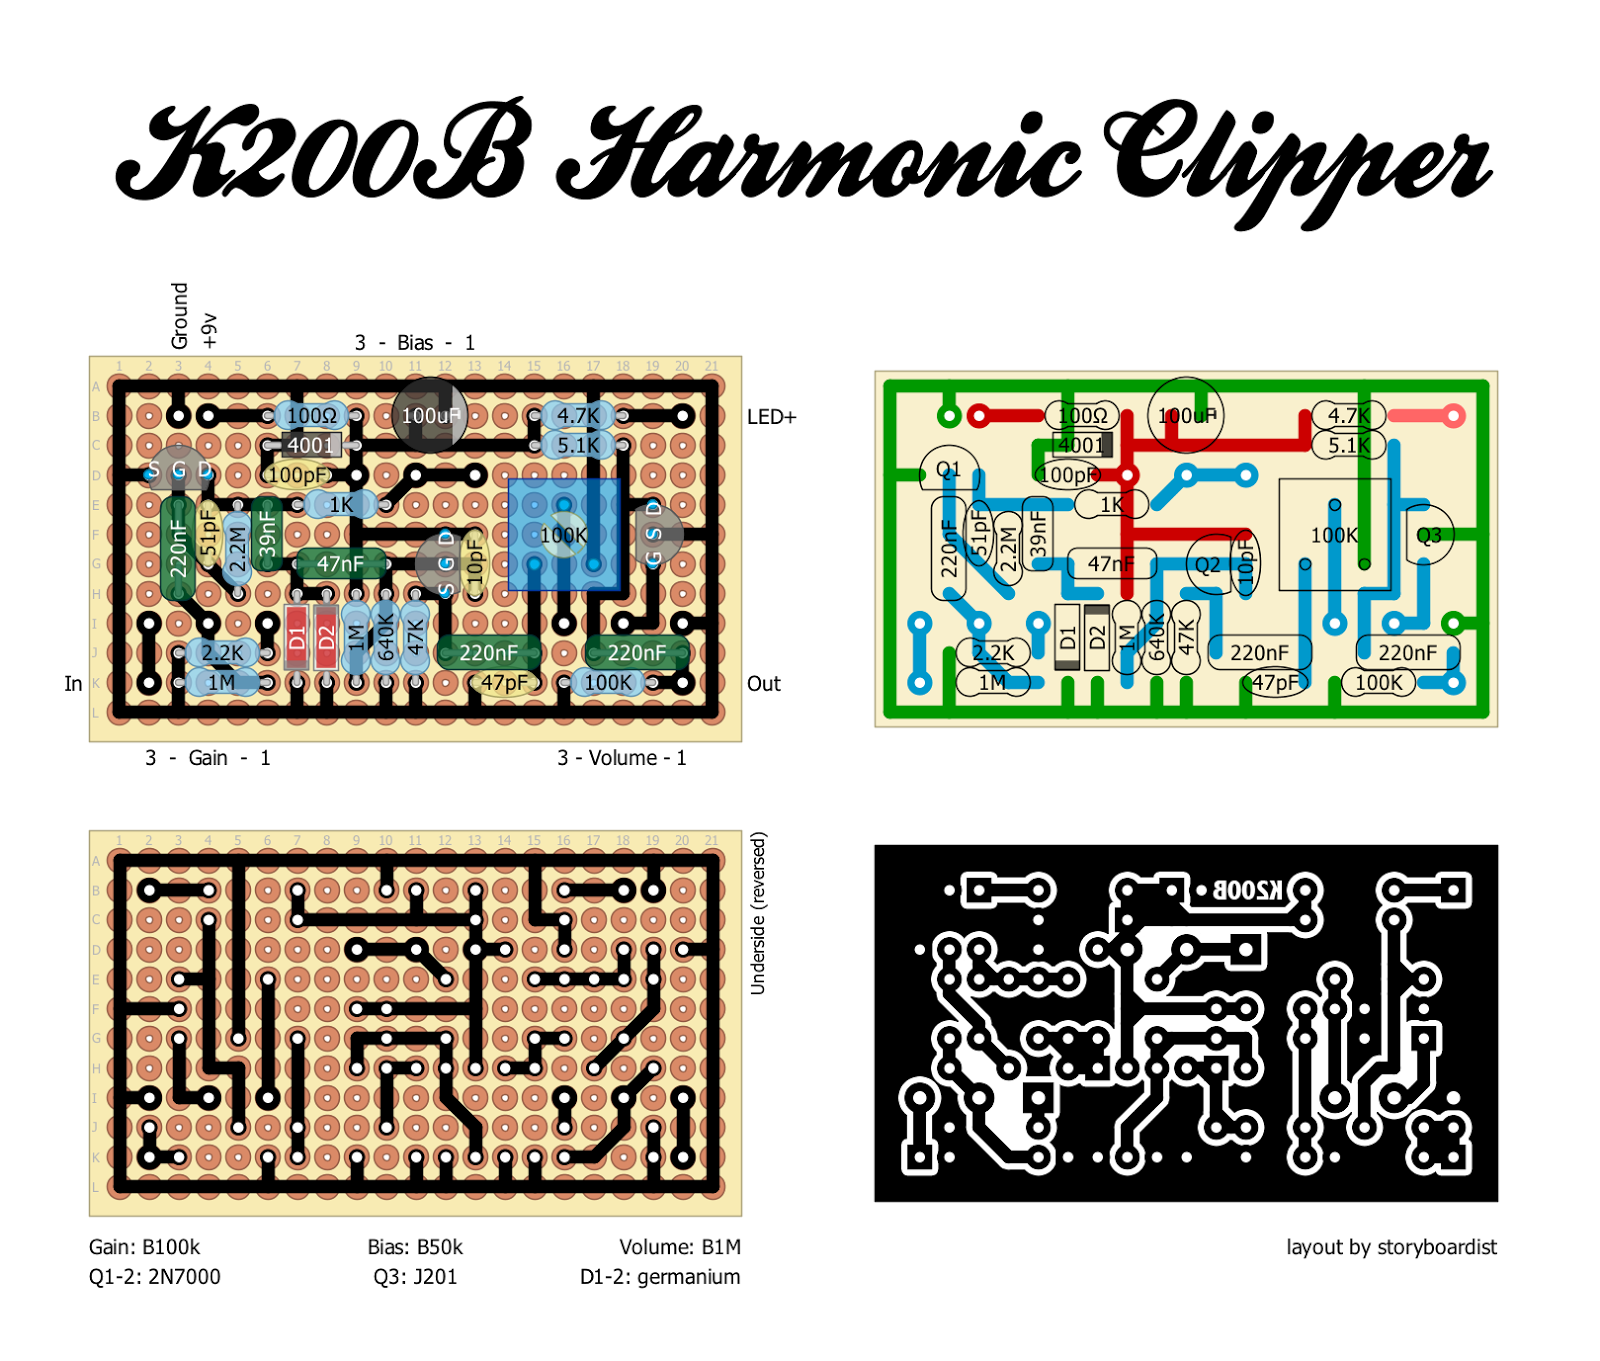 Perf And Pcb Effects Layouts Kustom K200b Harmonic Clipper Clippers An Overview Of Clipping Circuits Electronic A Lot The Credit For Adapting Original Circuit Into Pedal Form Goes To Group Cool Dudes On Diysb Pinkjimiphoton Digi2t Few Other Im